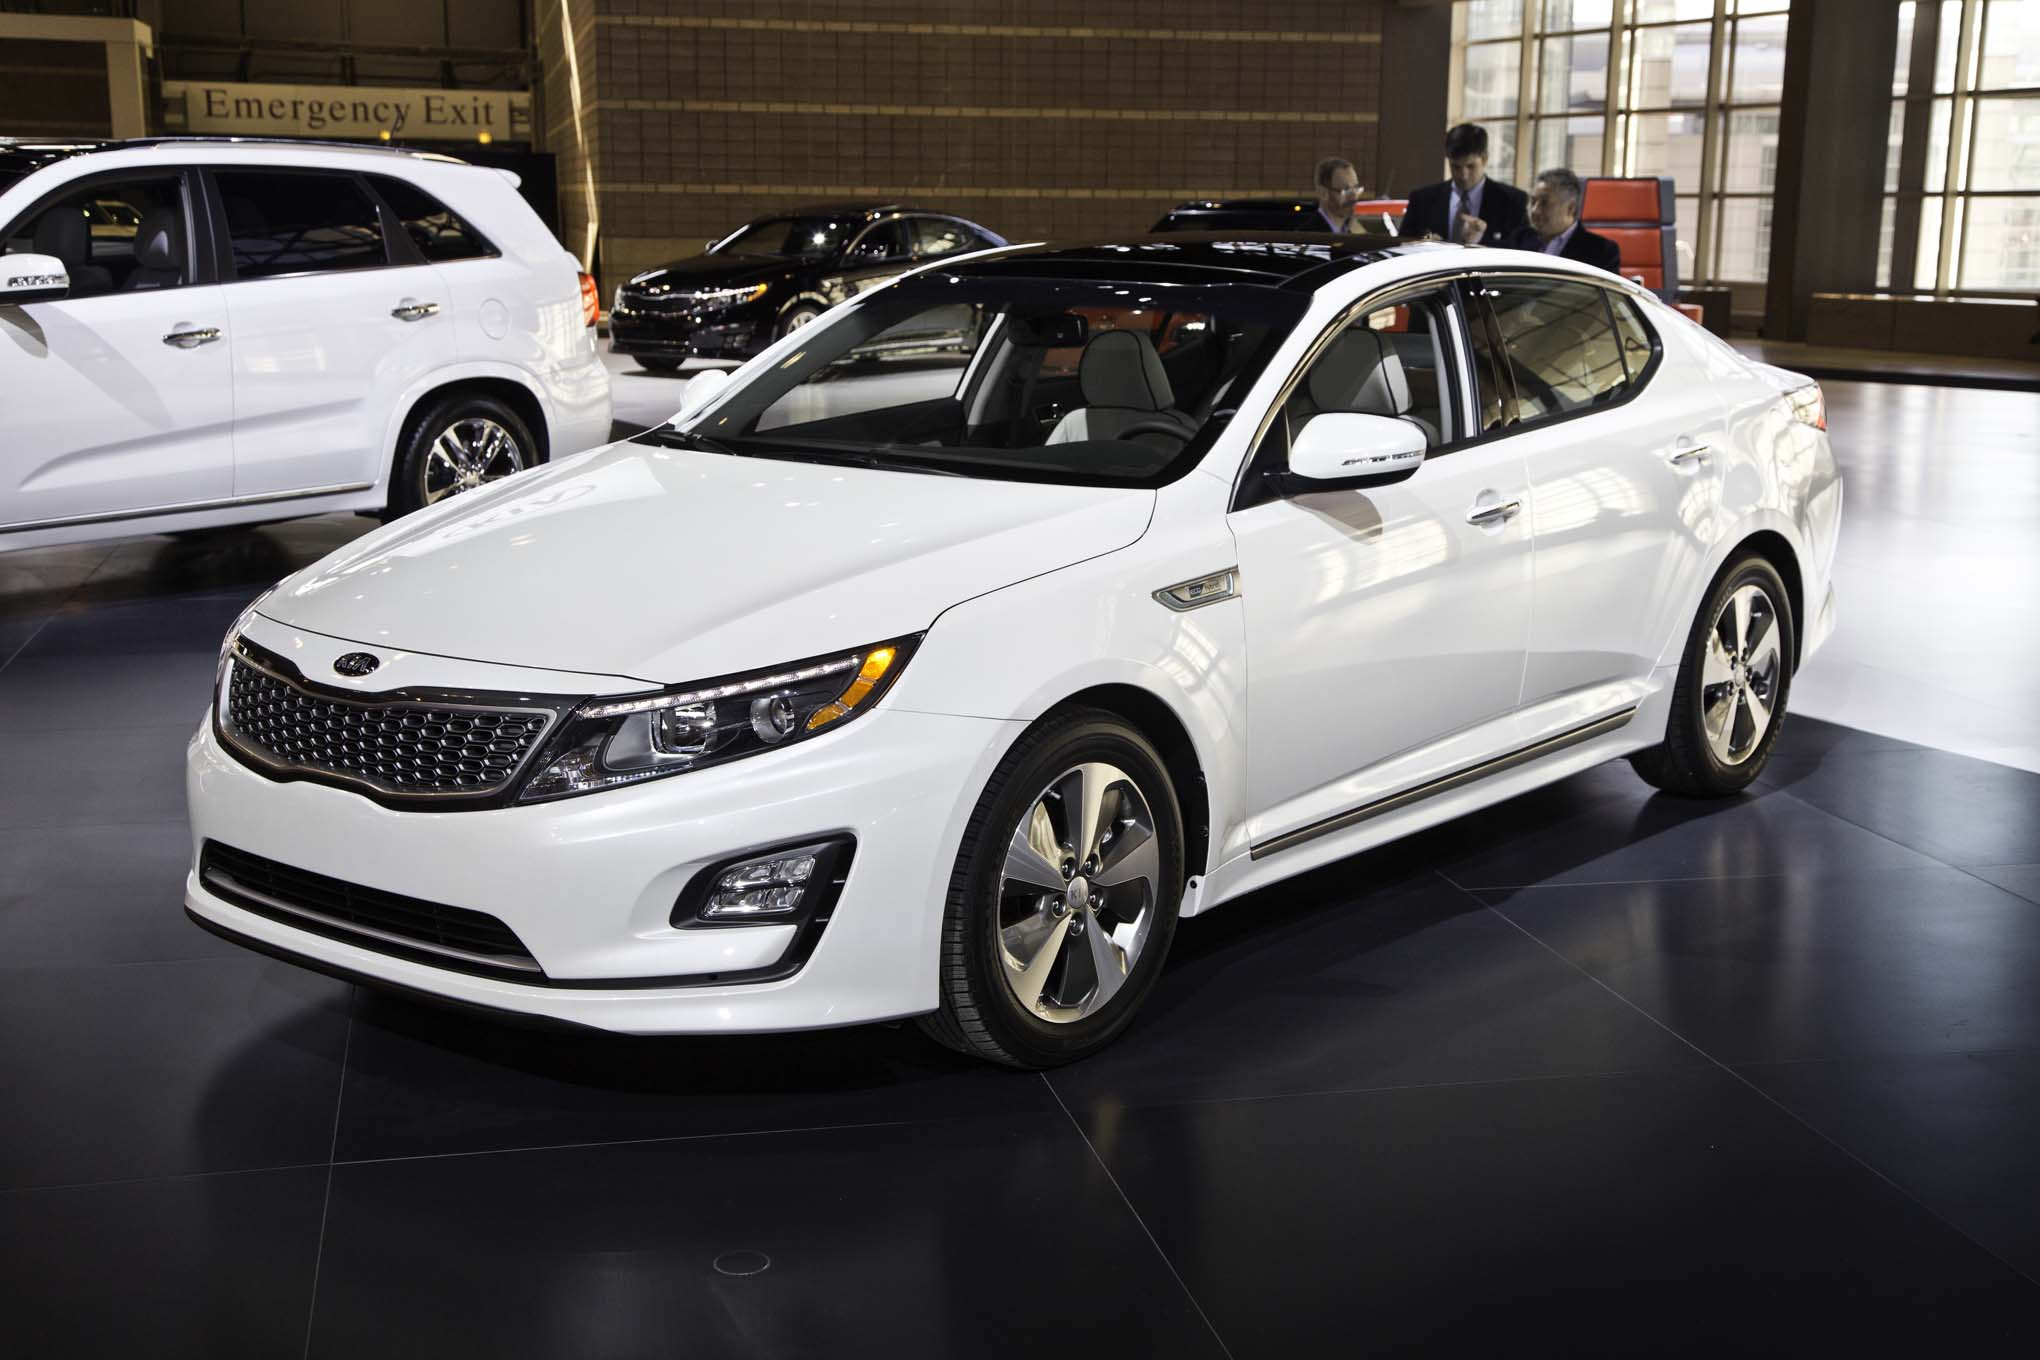 sale lot en carfinder blue copart salvage optima in online kia certificate on southern lx illinois il auctions auto